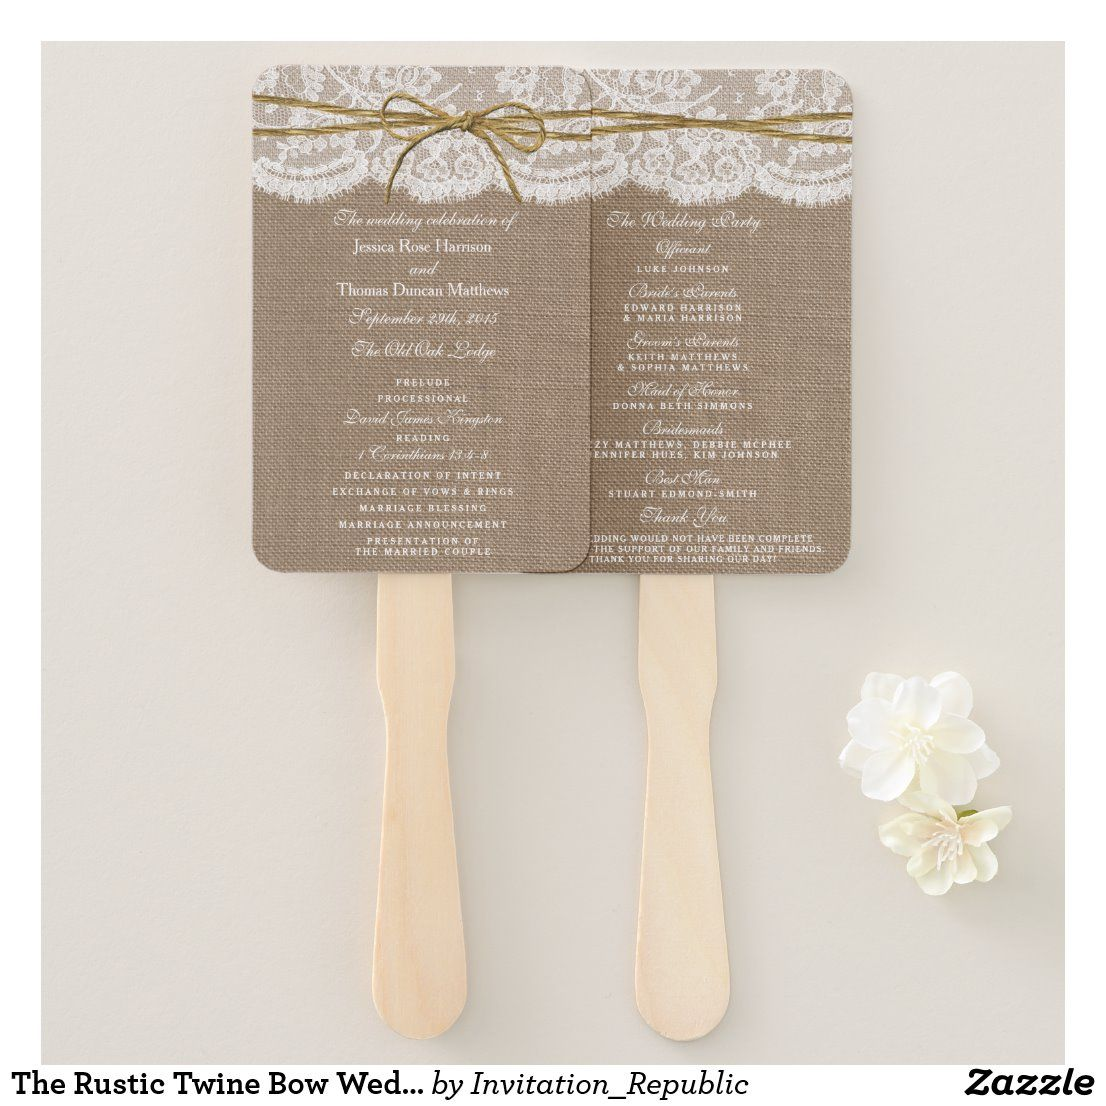 The Rustic Twine Bow Wedding Collection - Programs Hand Fan | Zazzle.com in  2020 | Burlap lace wedding, Wedding bows, Country wedding gifts